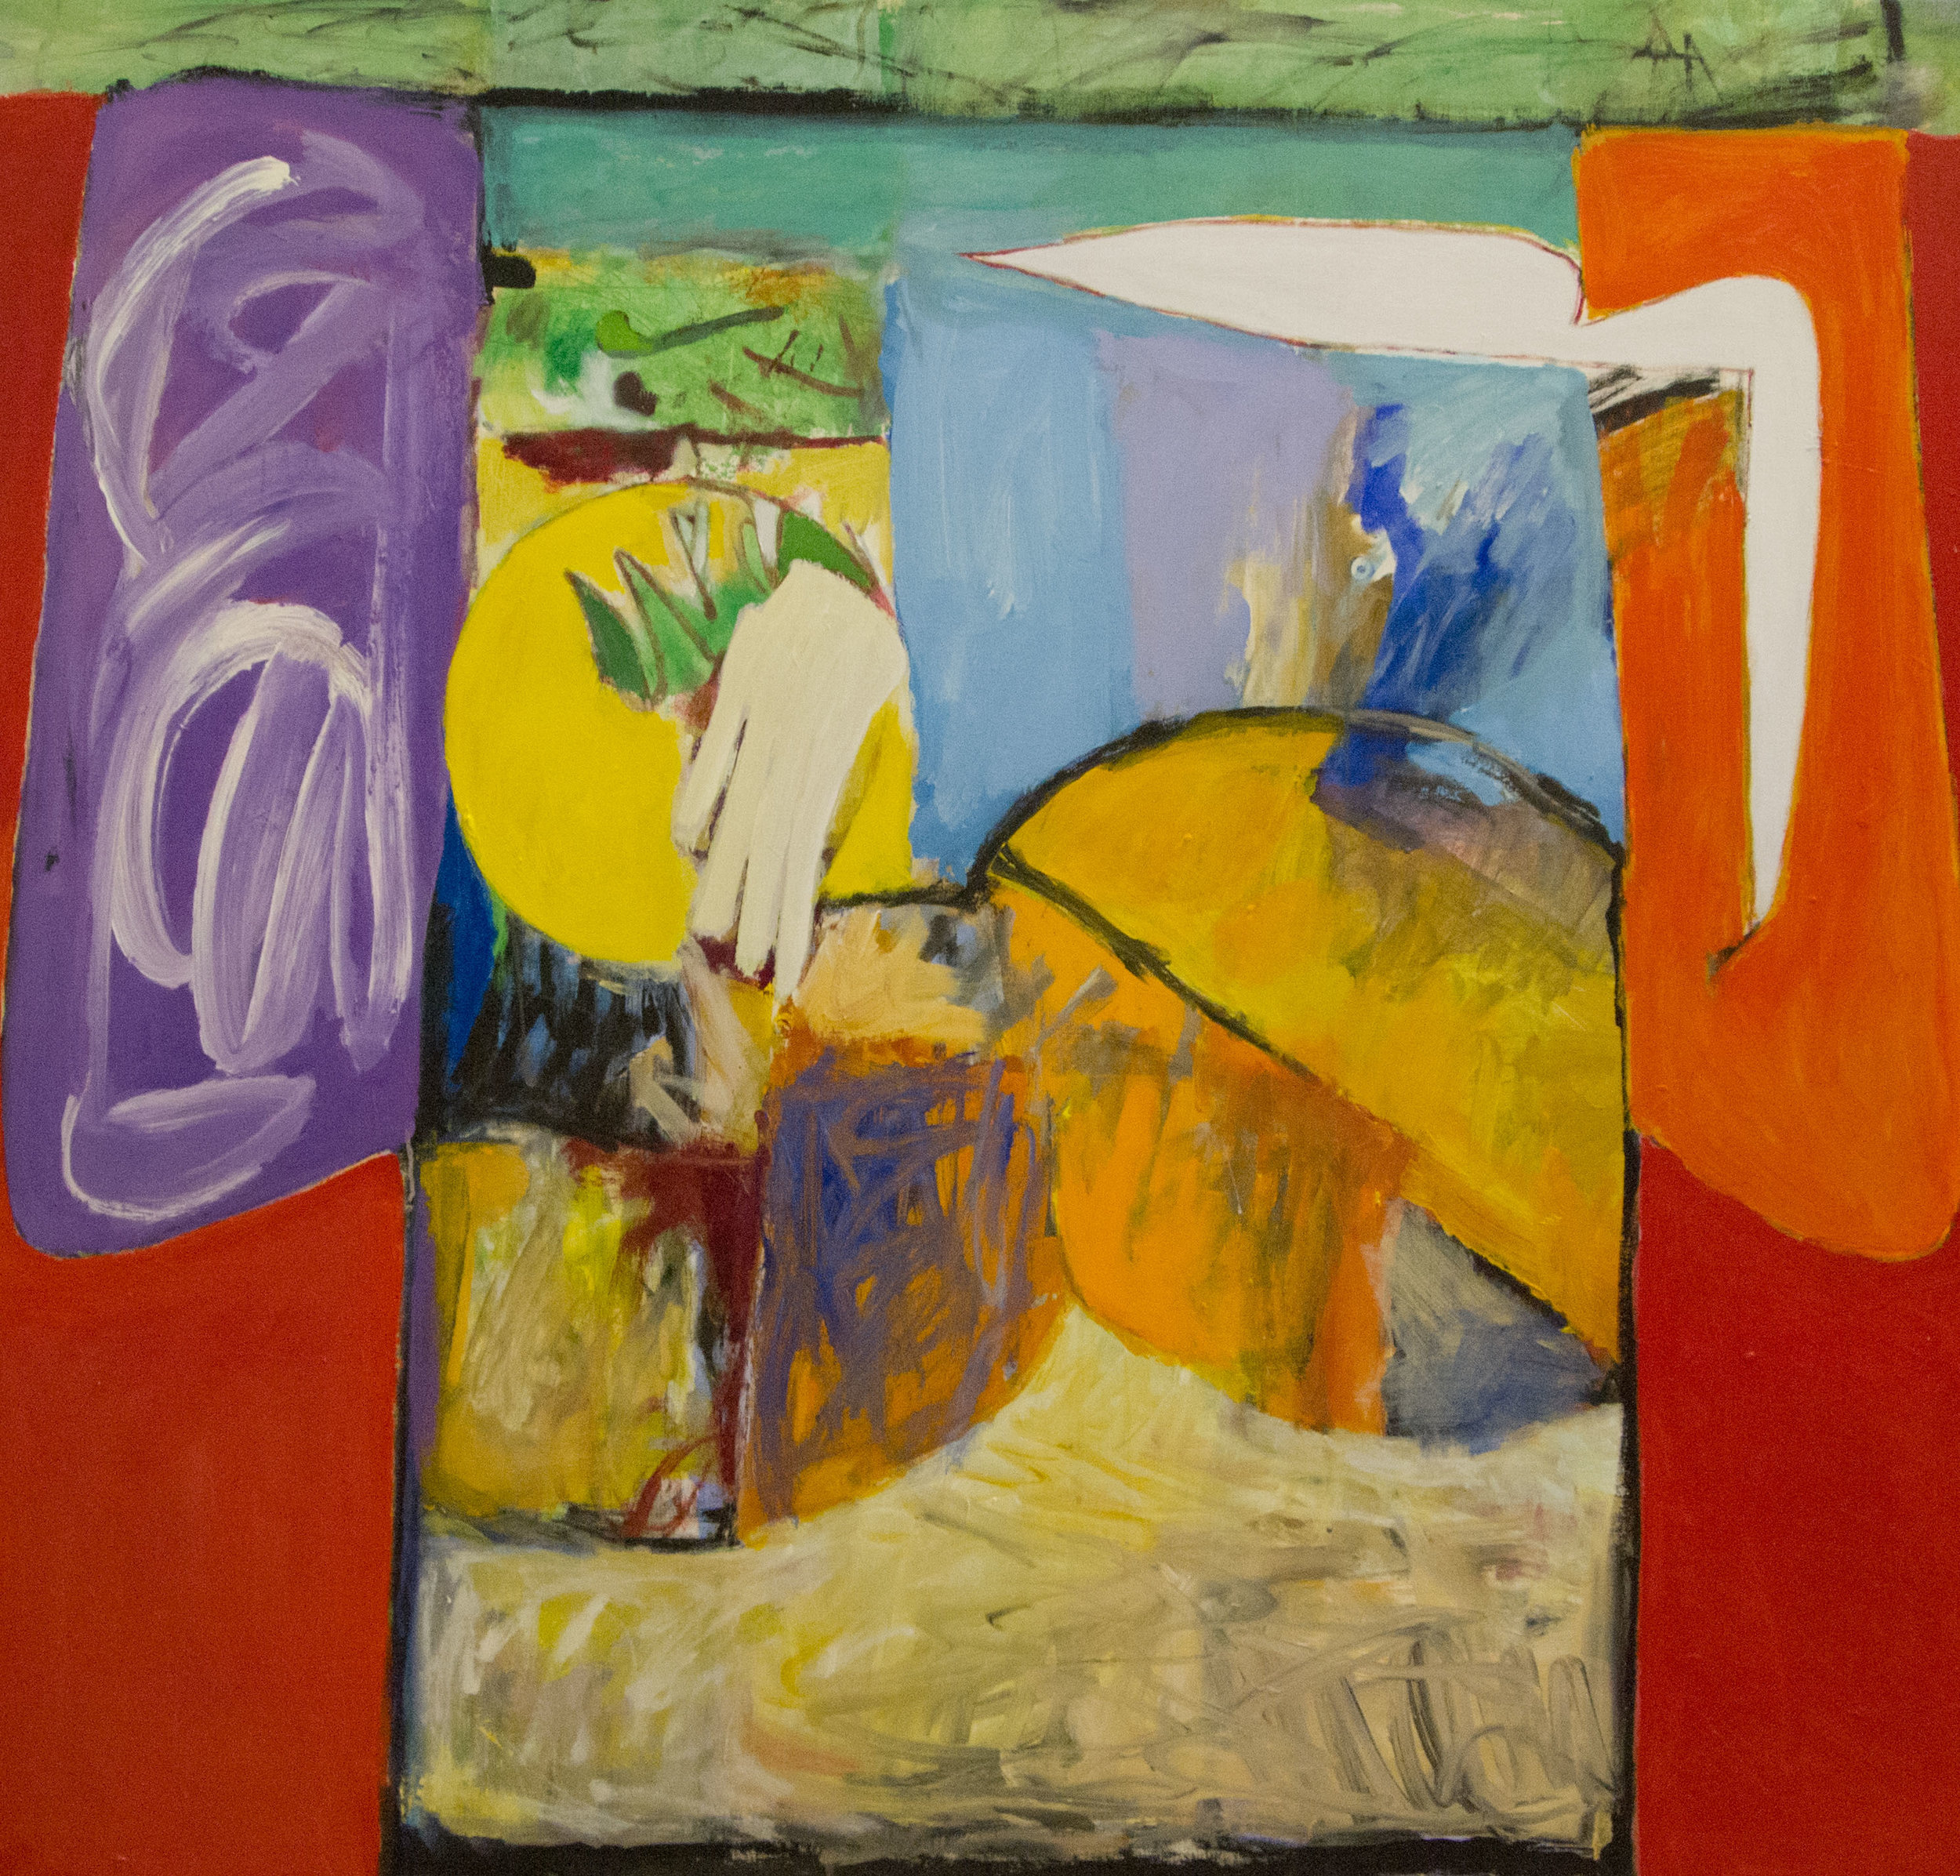 Kimono Against Red, 1997. Acrylic on Canvas, 54 x 58 in. ( 137 x 147 cm.) Collection of The University of Wyoming Art Museum